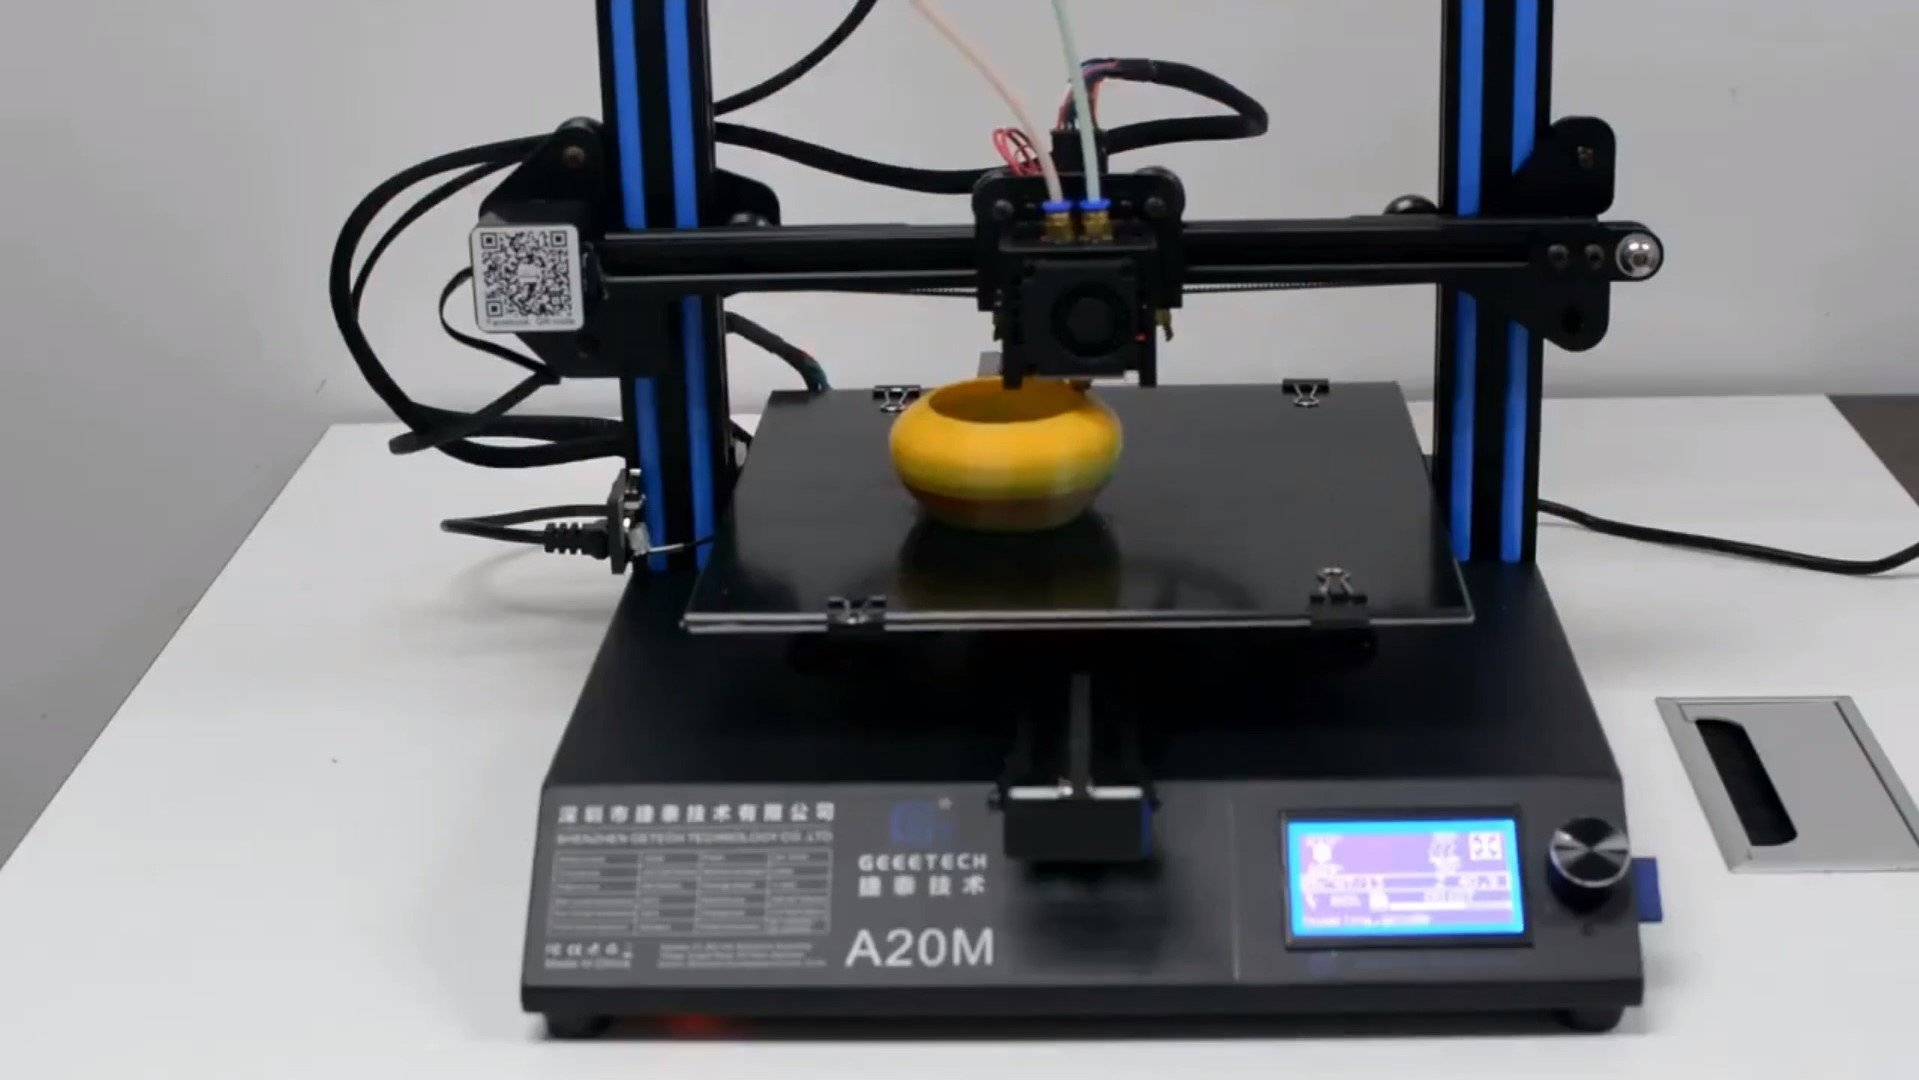 Geeetech A20M 3D Printer: Review the Specs | All3DP